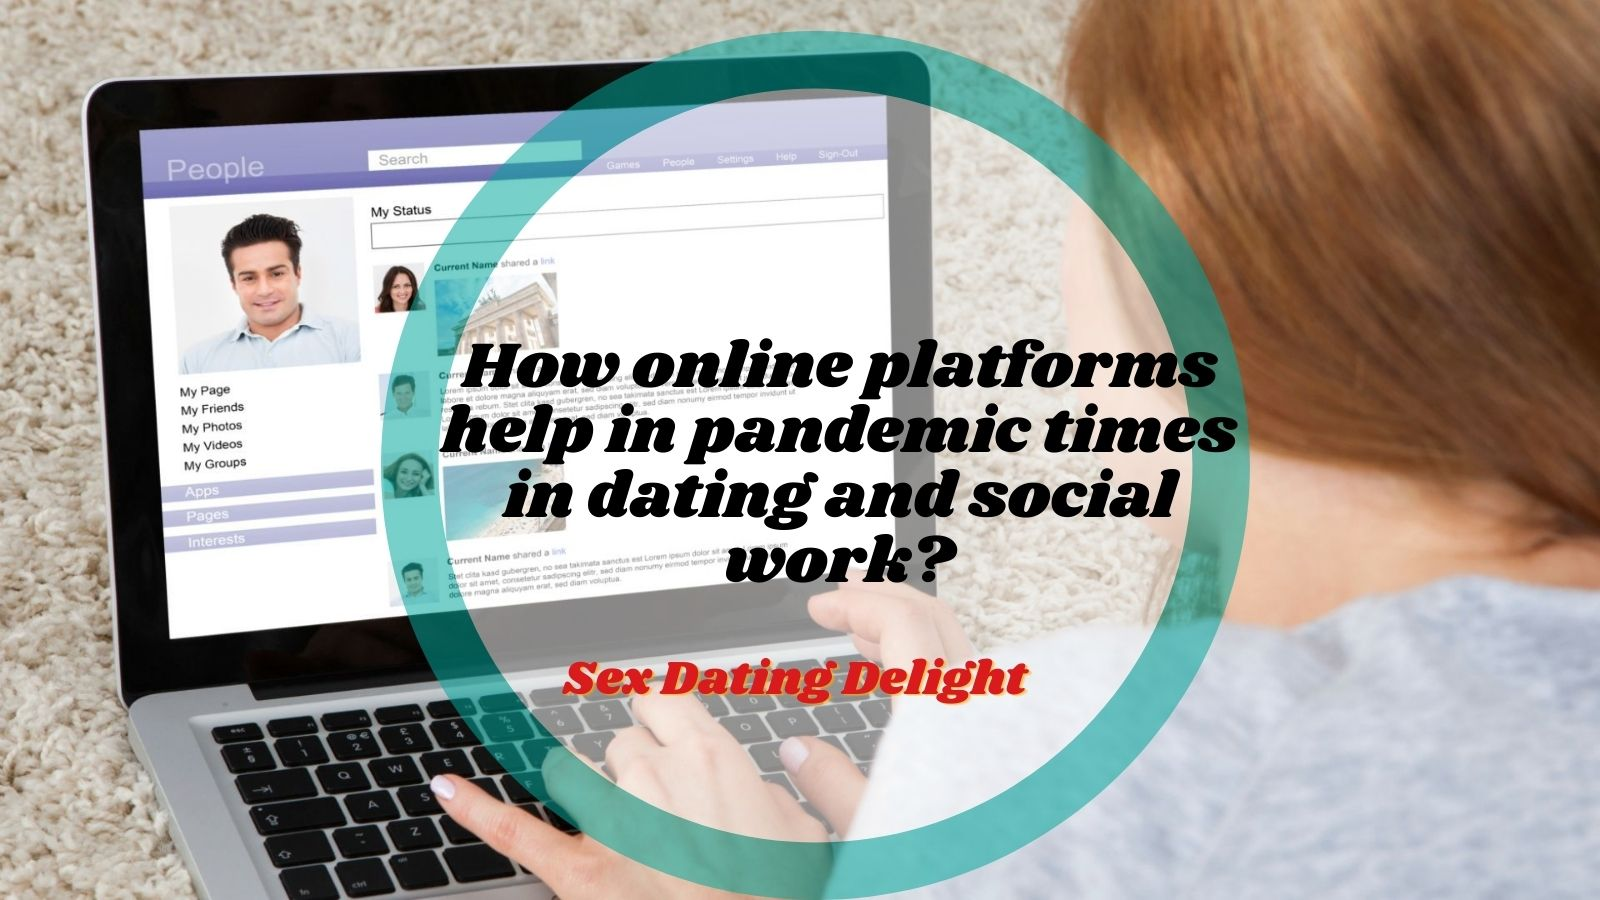 How online platforms help in pandemic times in dating and social work?